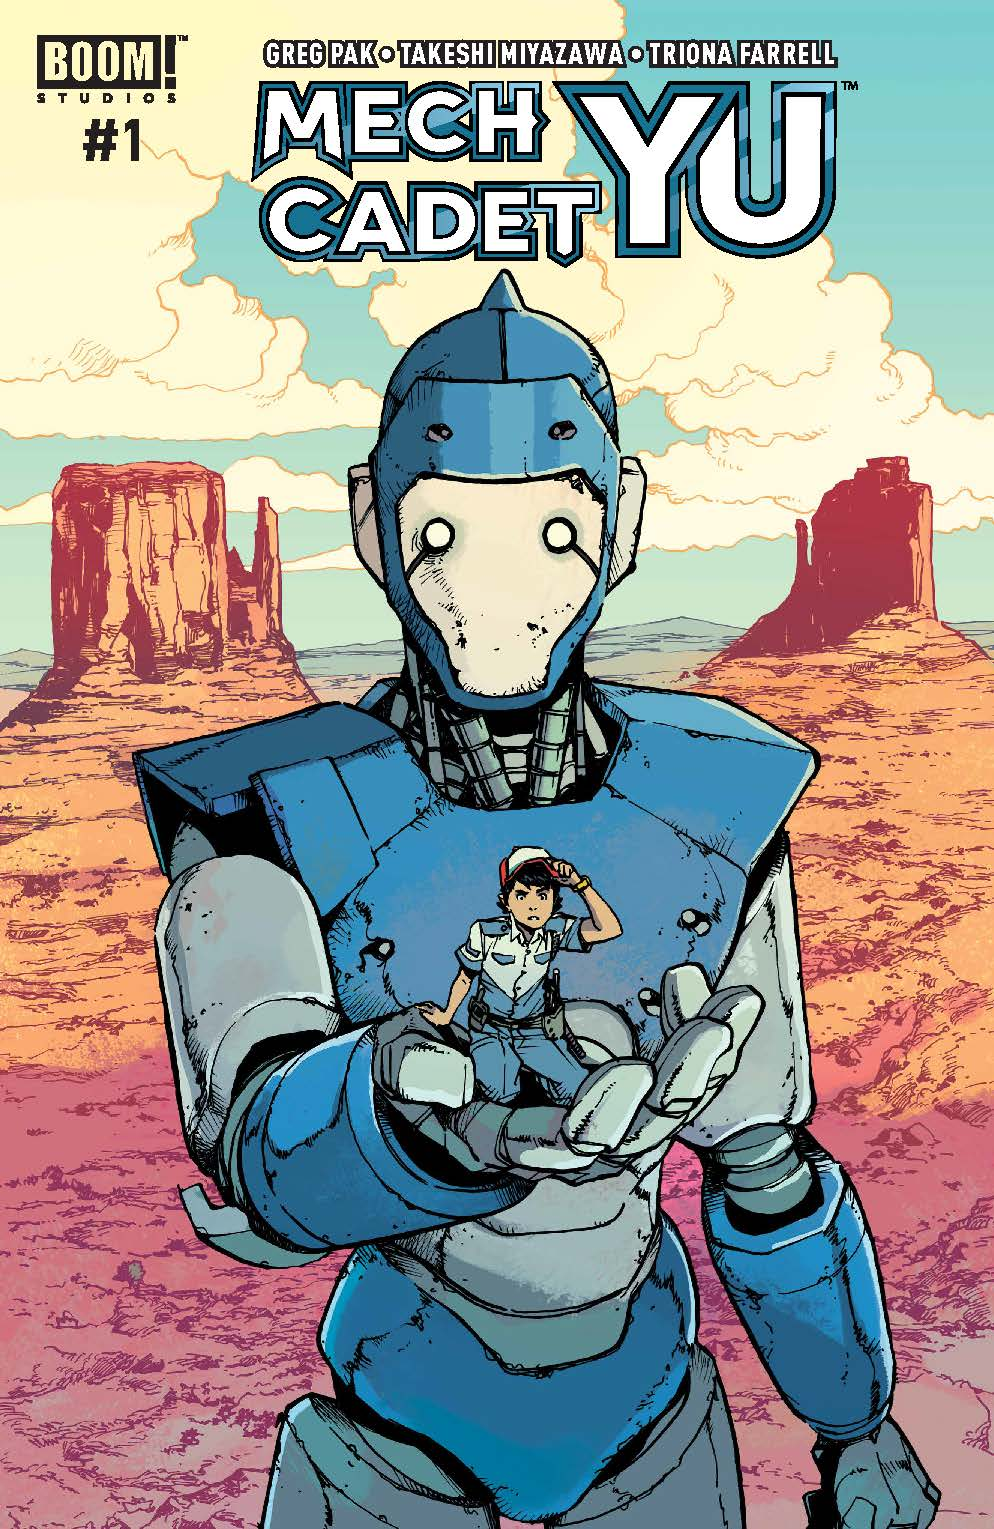 'Mech Cadet Yu' #1, out soon from BOOM! Studios